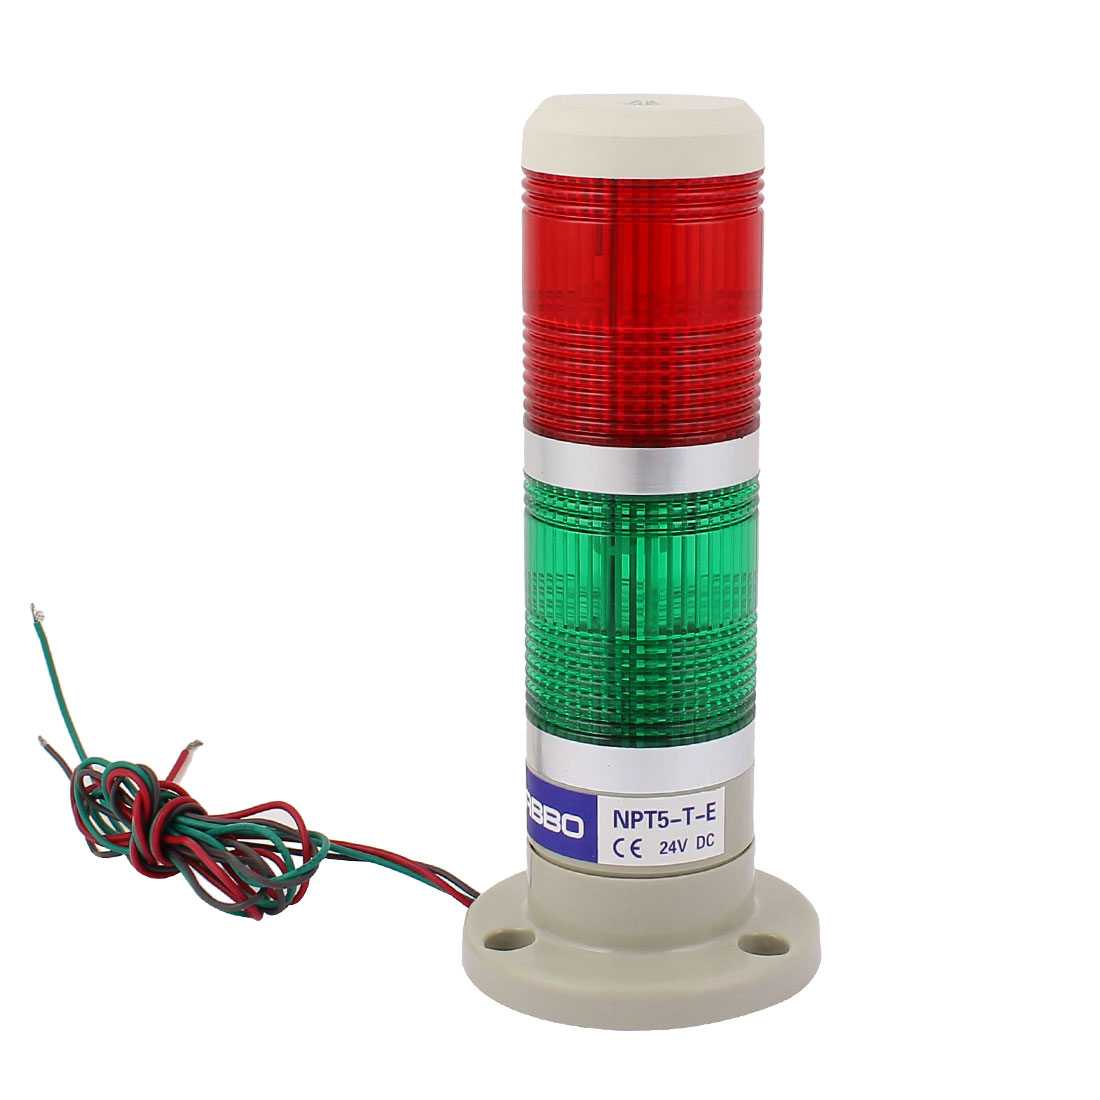 NPT5-T-E DC 24V Red Green Plastic Shell LED Flash Industrial Safety Alarm Lamp Warning Signal Light